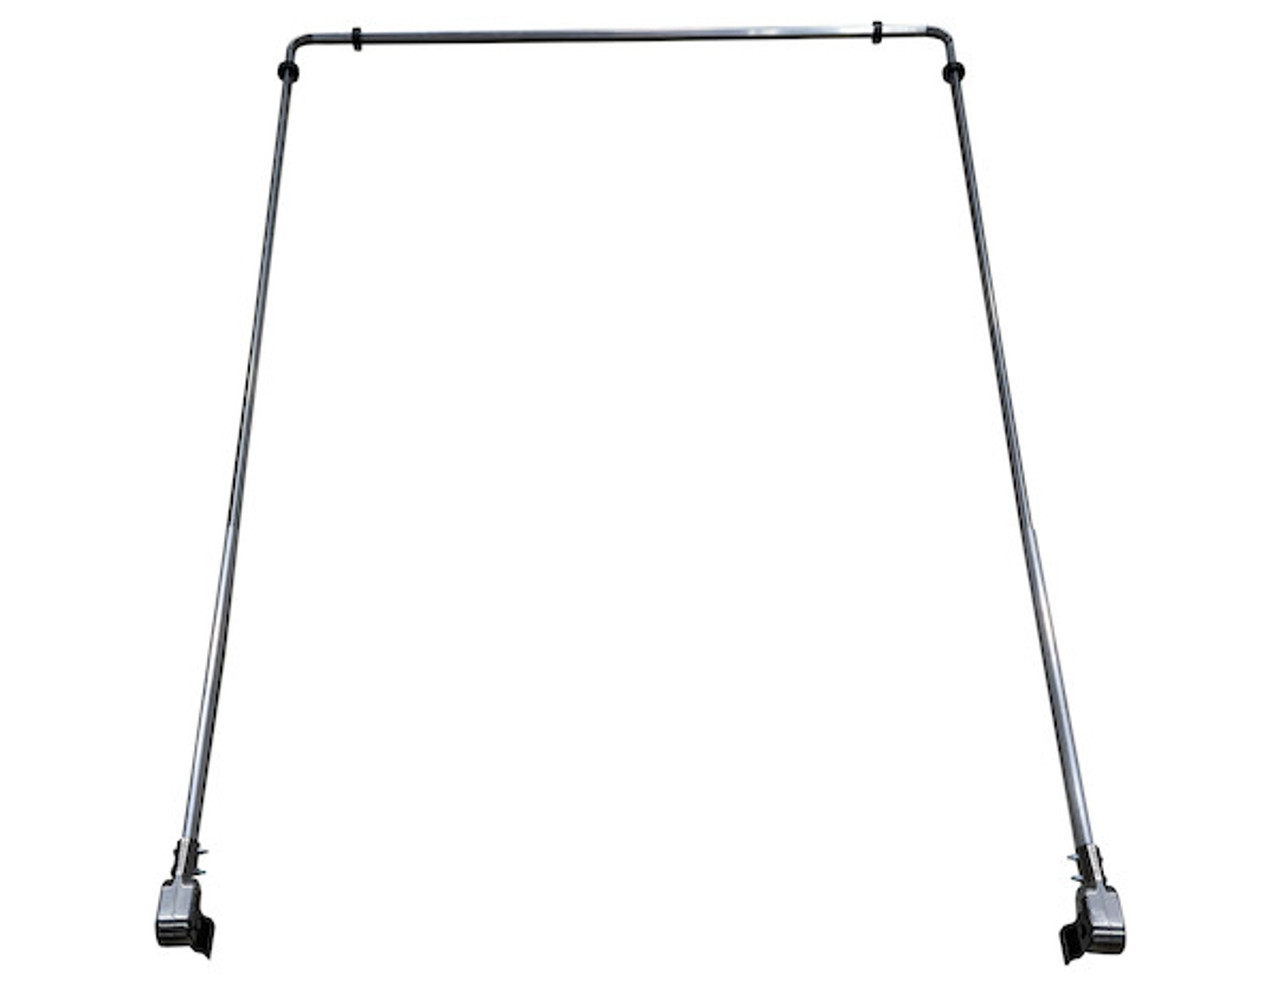 ARMS ONLY 5 SPRING POLISHED ALUMINUM 14'-23' Dump Truck Tarp Kit